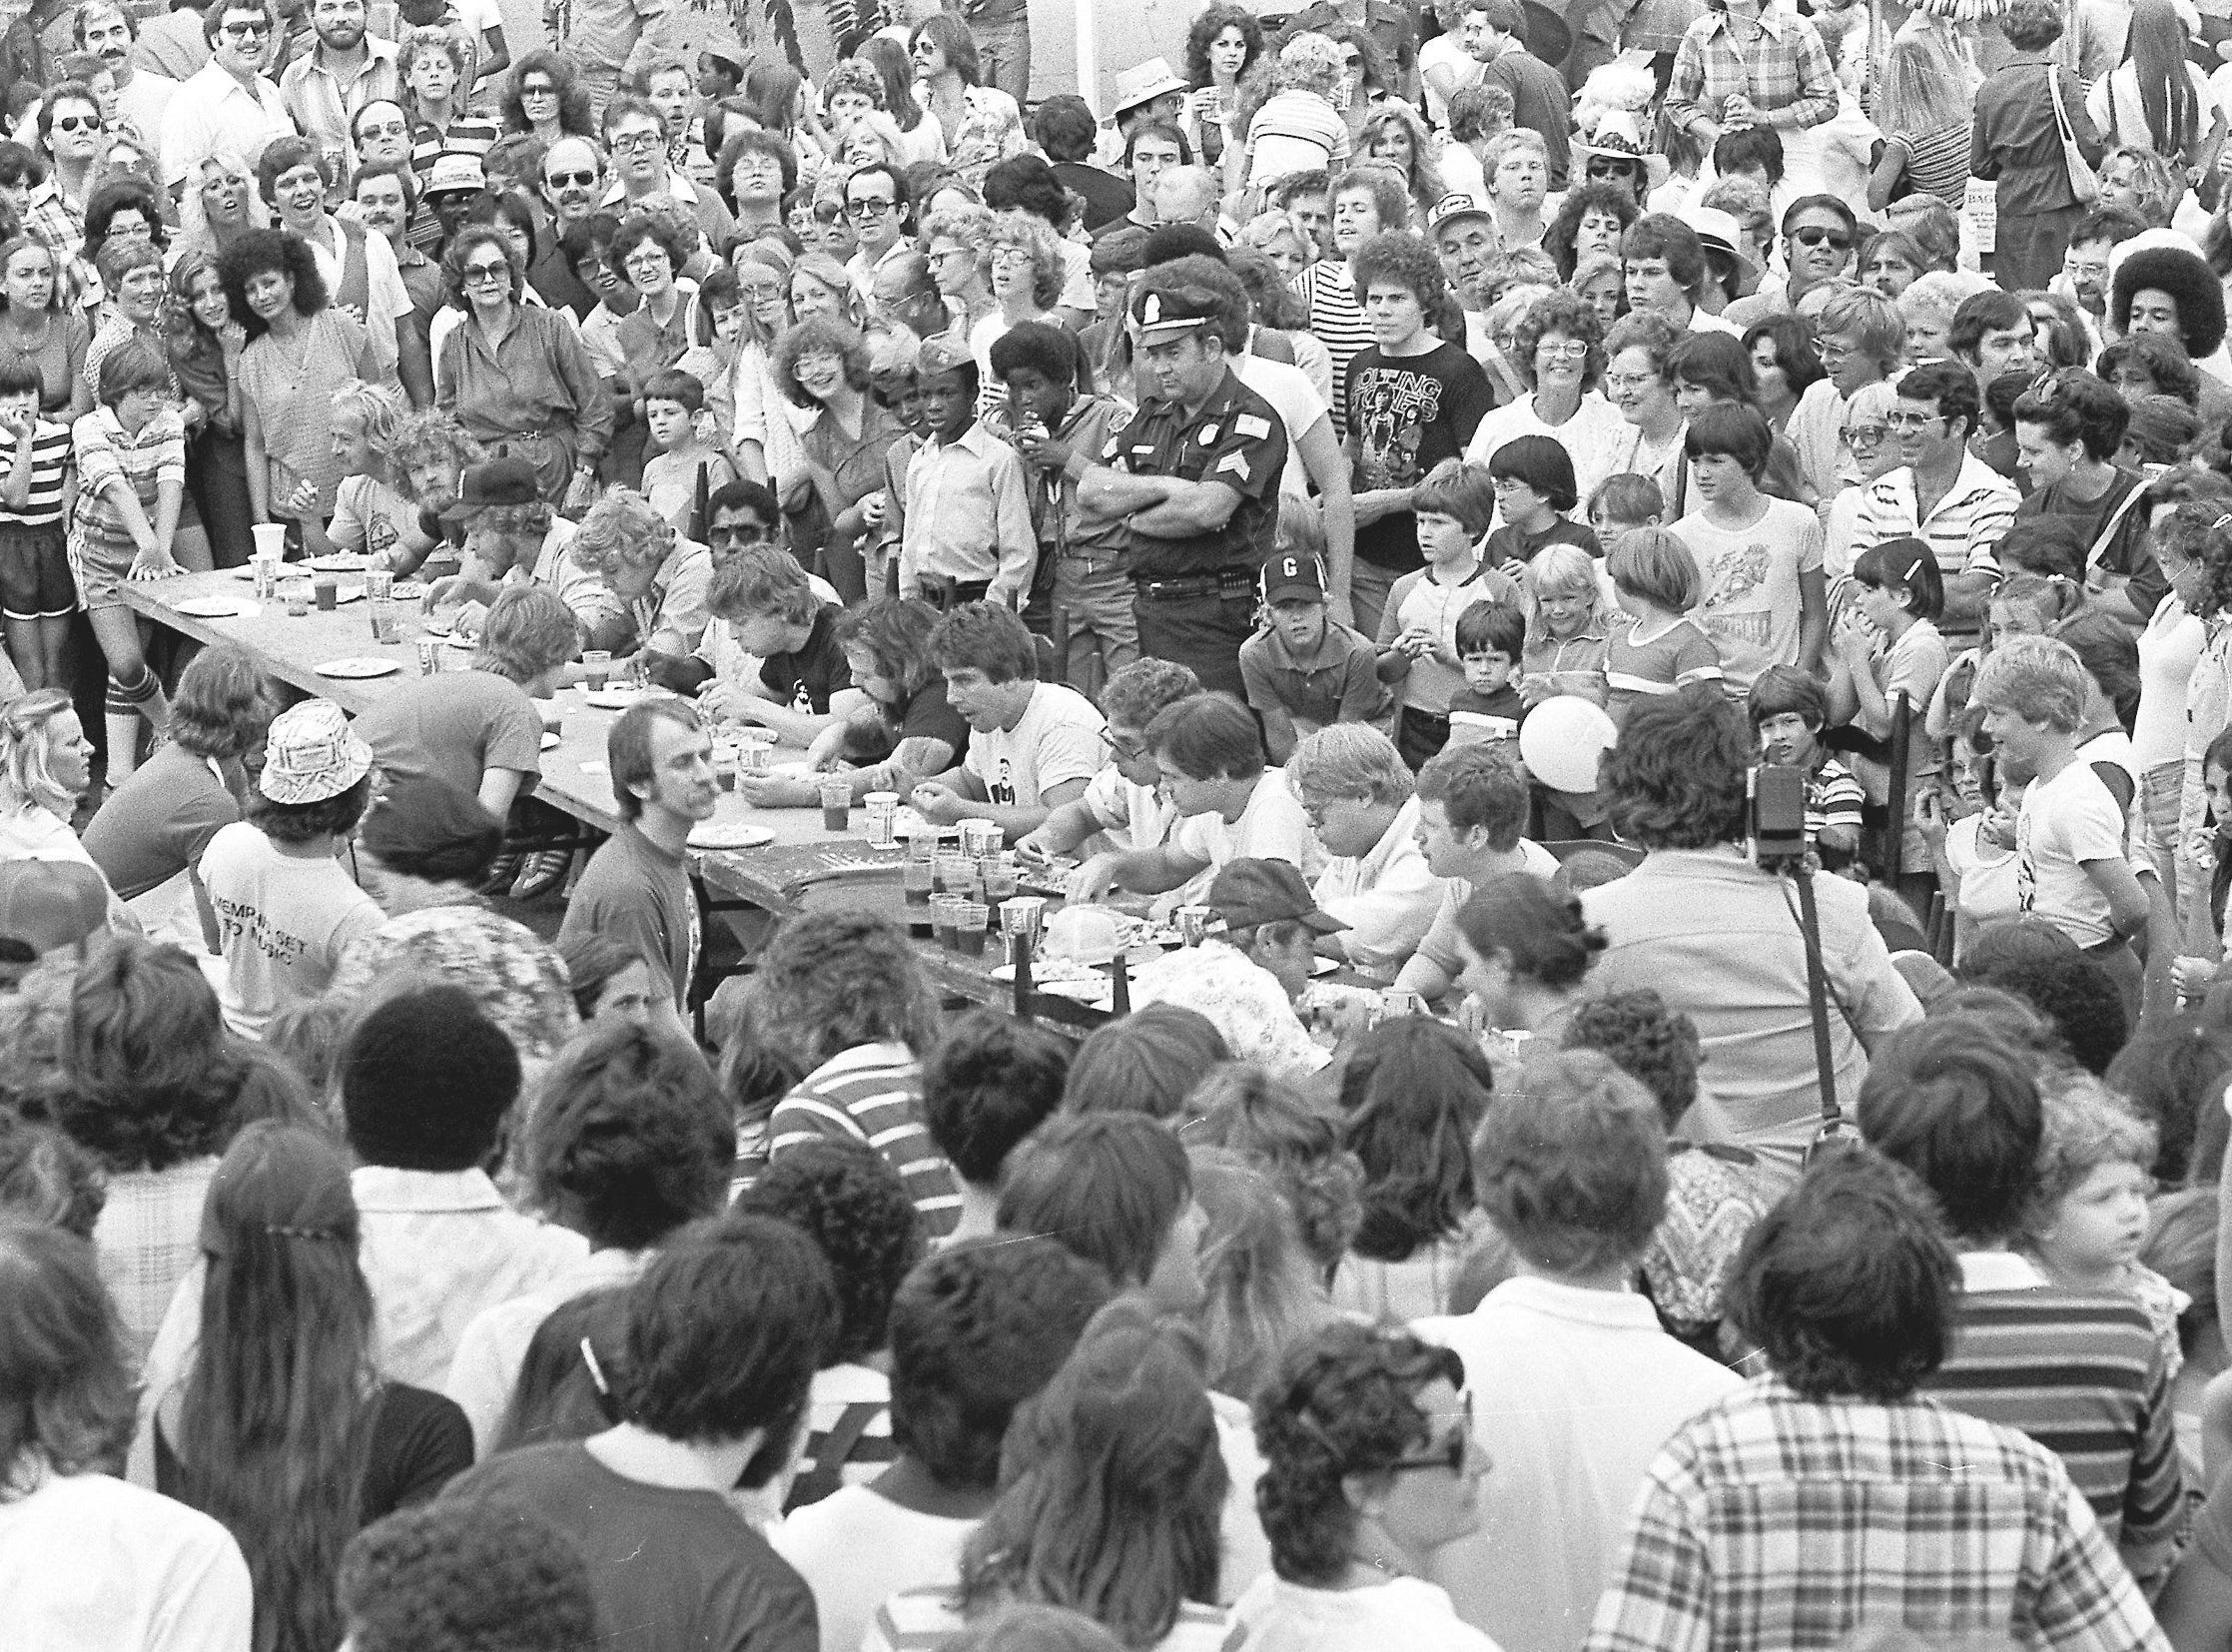 """J.W. """"Bear"""" Street, the bearded man wearing the dark shirt seated at the center of the table, set a world record for shrimp eating during the Beale Street Landing's Antique Sale and Oyster Festival in June 1979. Street paid $10 for 2 1/2 pounds of peeled shrimp, then set out with about 15 other paying contestants to beat the record of 7 minutes, 32 seconds in the Guinness Book of World Records. Street consumed his shrimp in 6 1/2 minutes and won $100, which he donated to St. Jude Children's Research Hospital. An estimated 35,000 persons attended the two-day festival. The event was sponsored by Beale Street Landing and QUAD-104 FM radio station."""